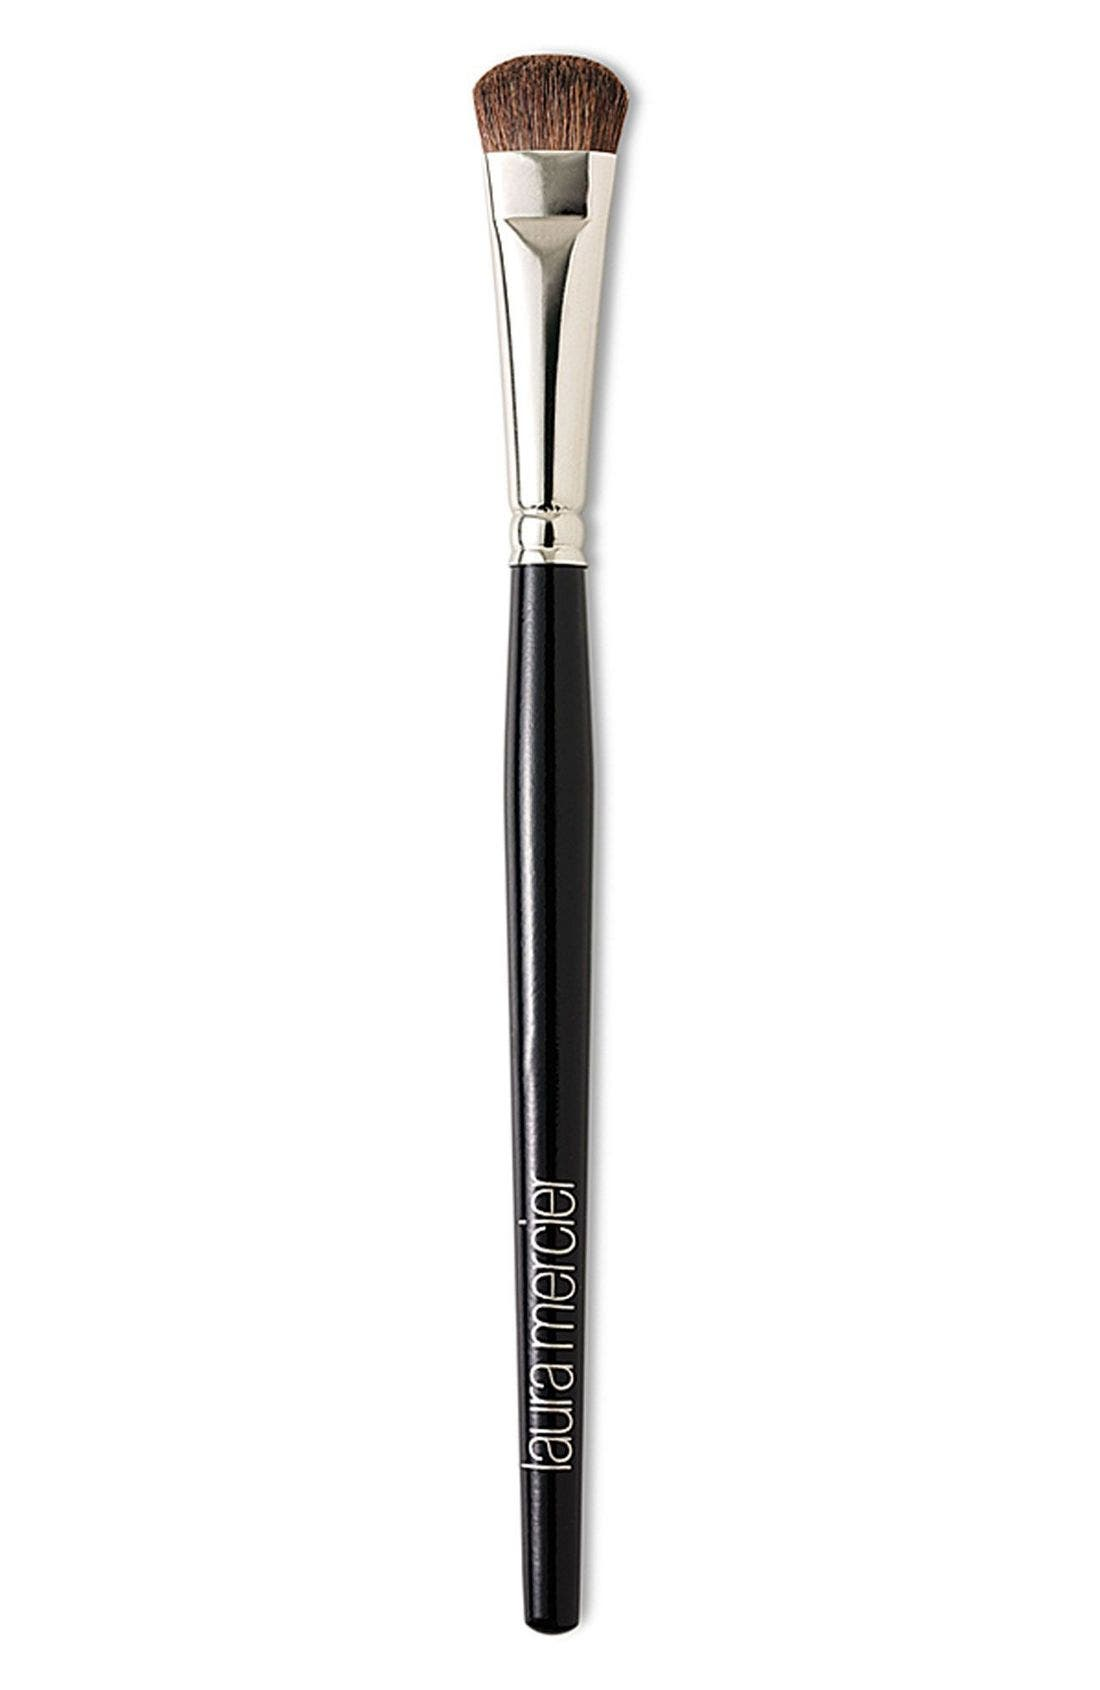 All Over Eye Colour Brush,                             Main thumbnail 1, color,